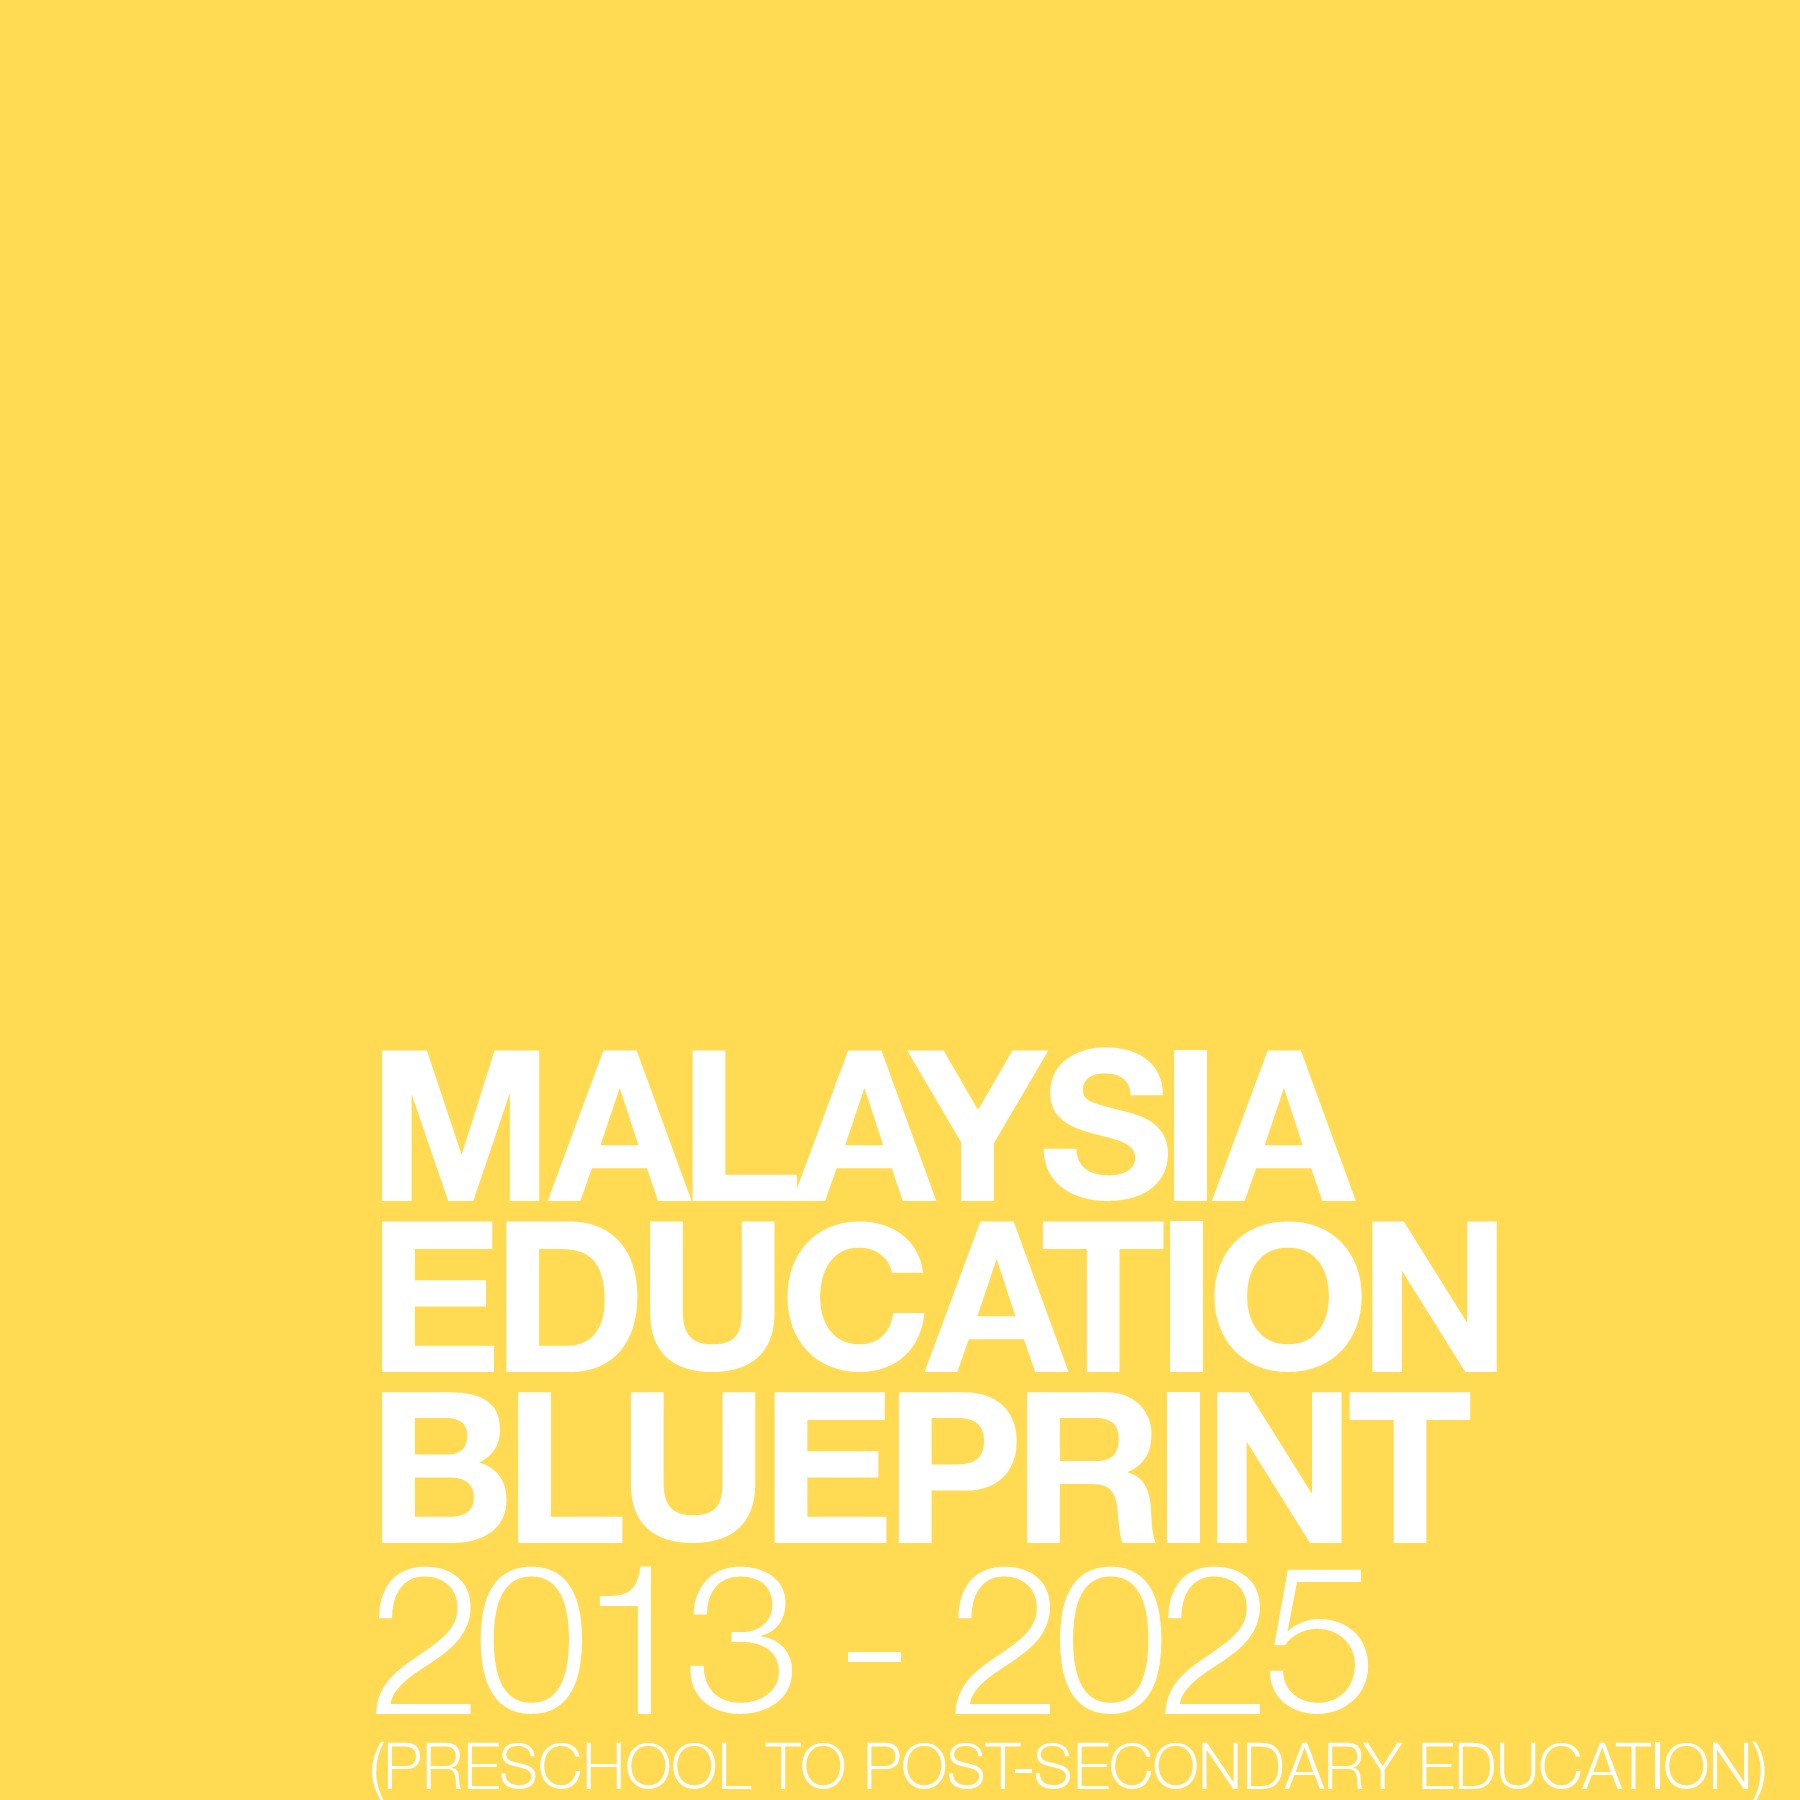 Malaysia education blueprint 2013 2025 pages 1 50 text version malaysia education blueprint 2013 2025 pages 1 50 text version anyflip malvernweather Choice Image